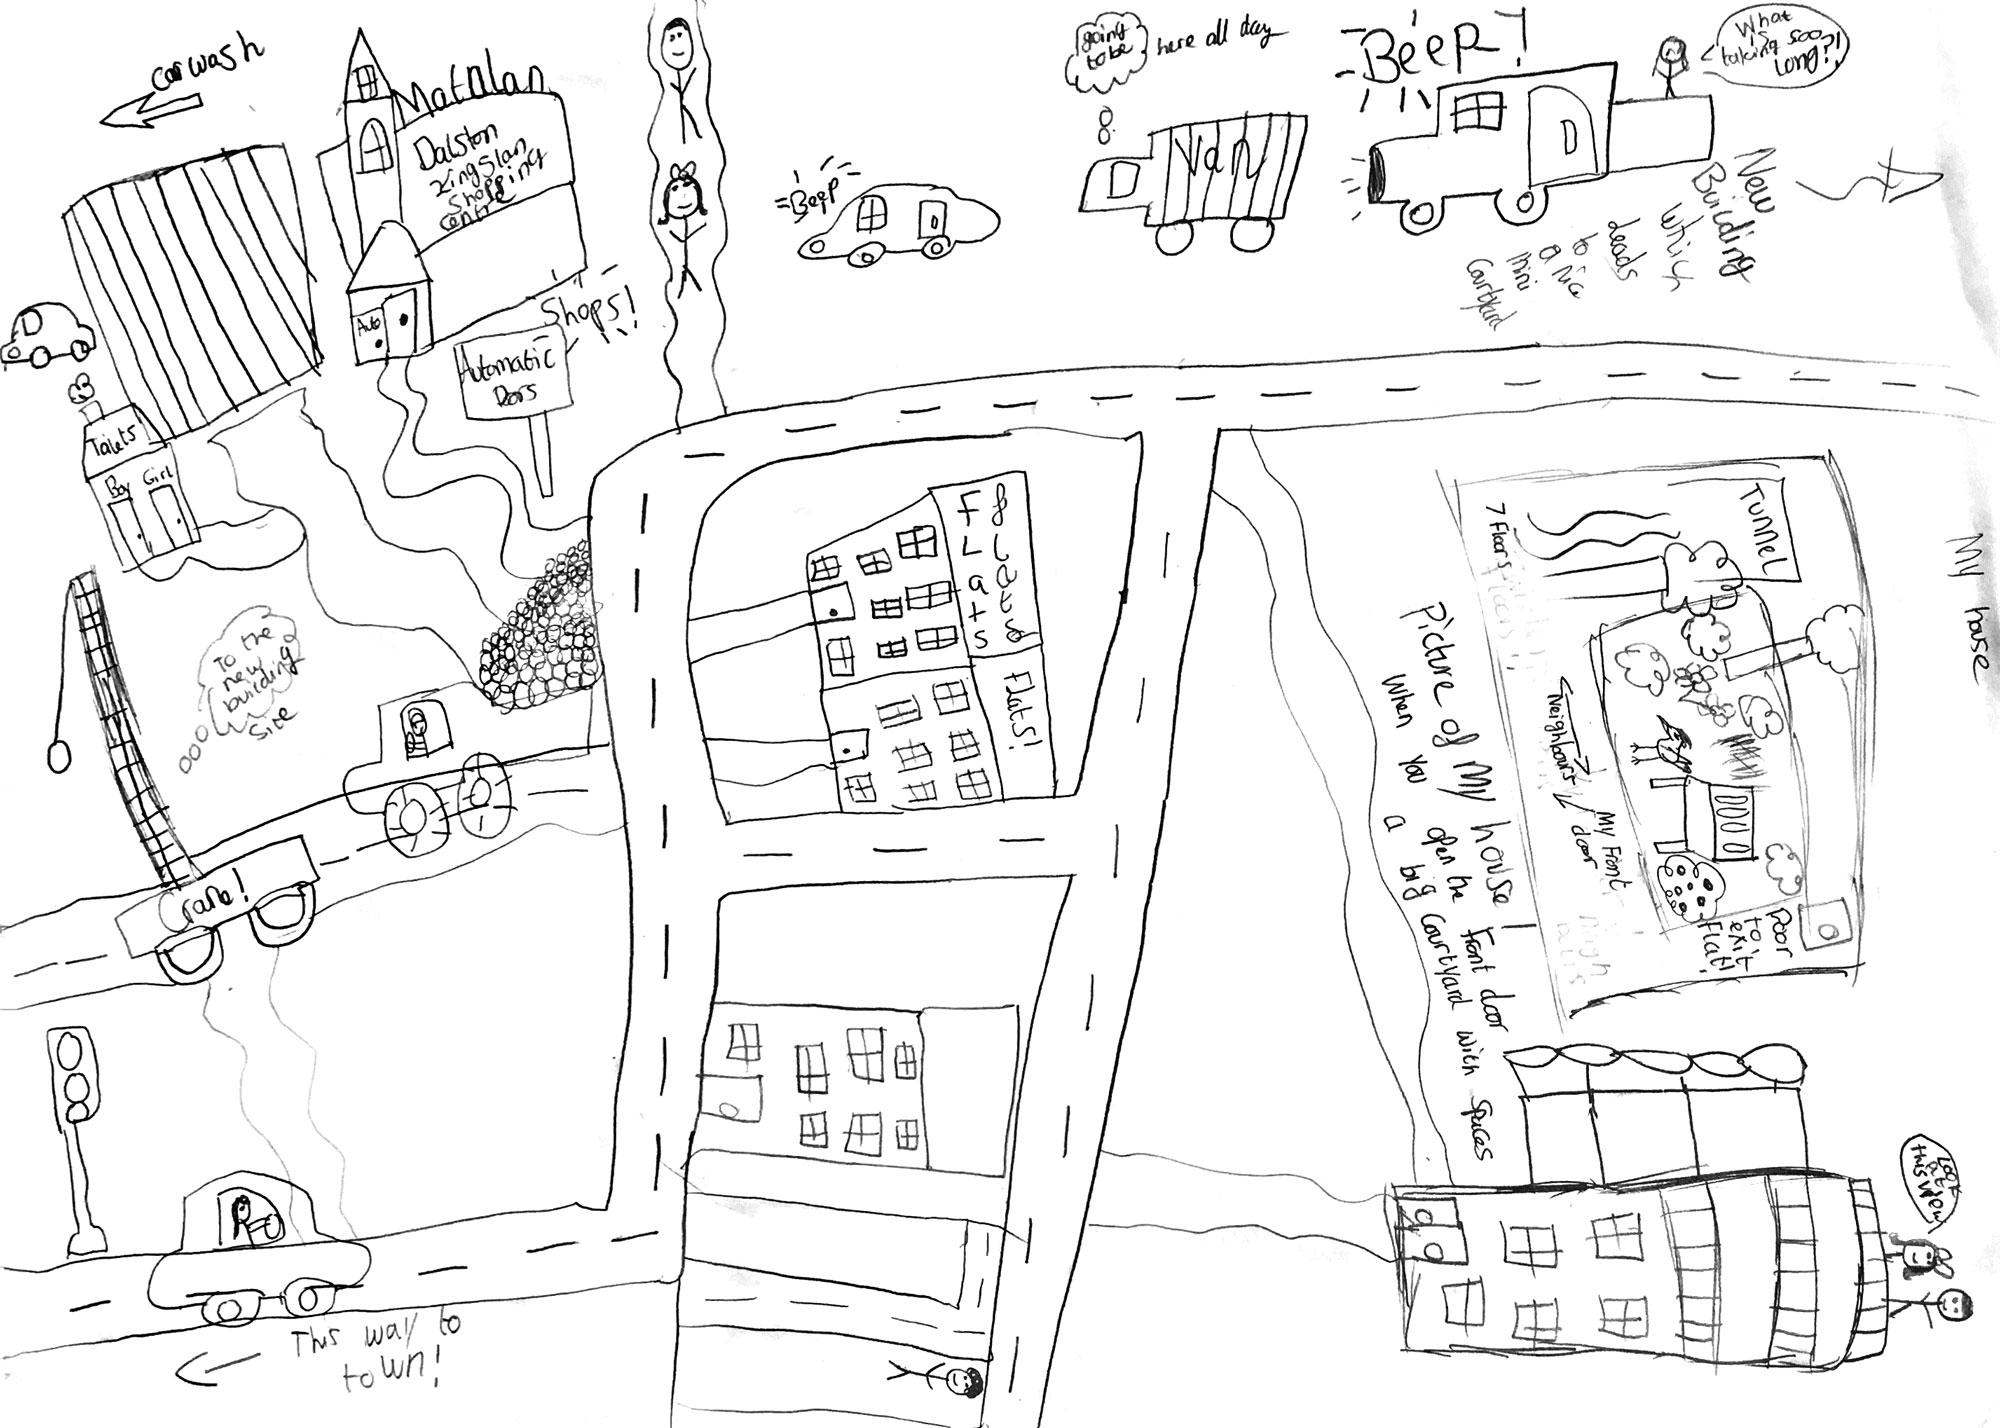 Map-drawing exercise reveals a pupil's view of Hackney